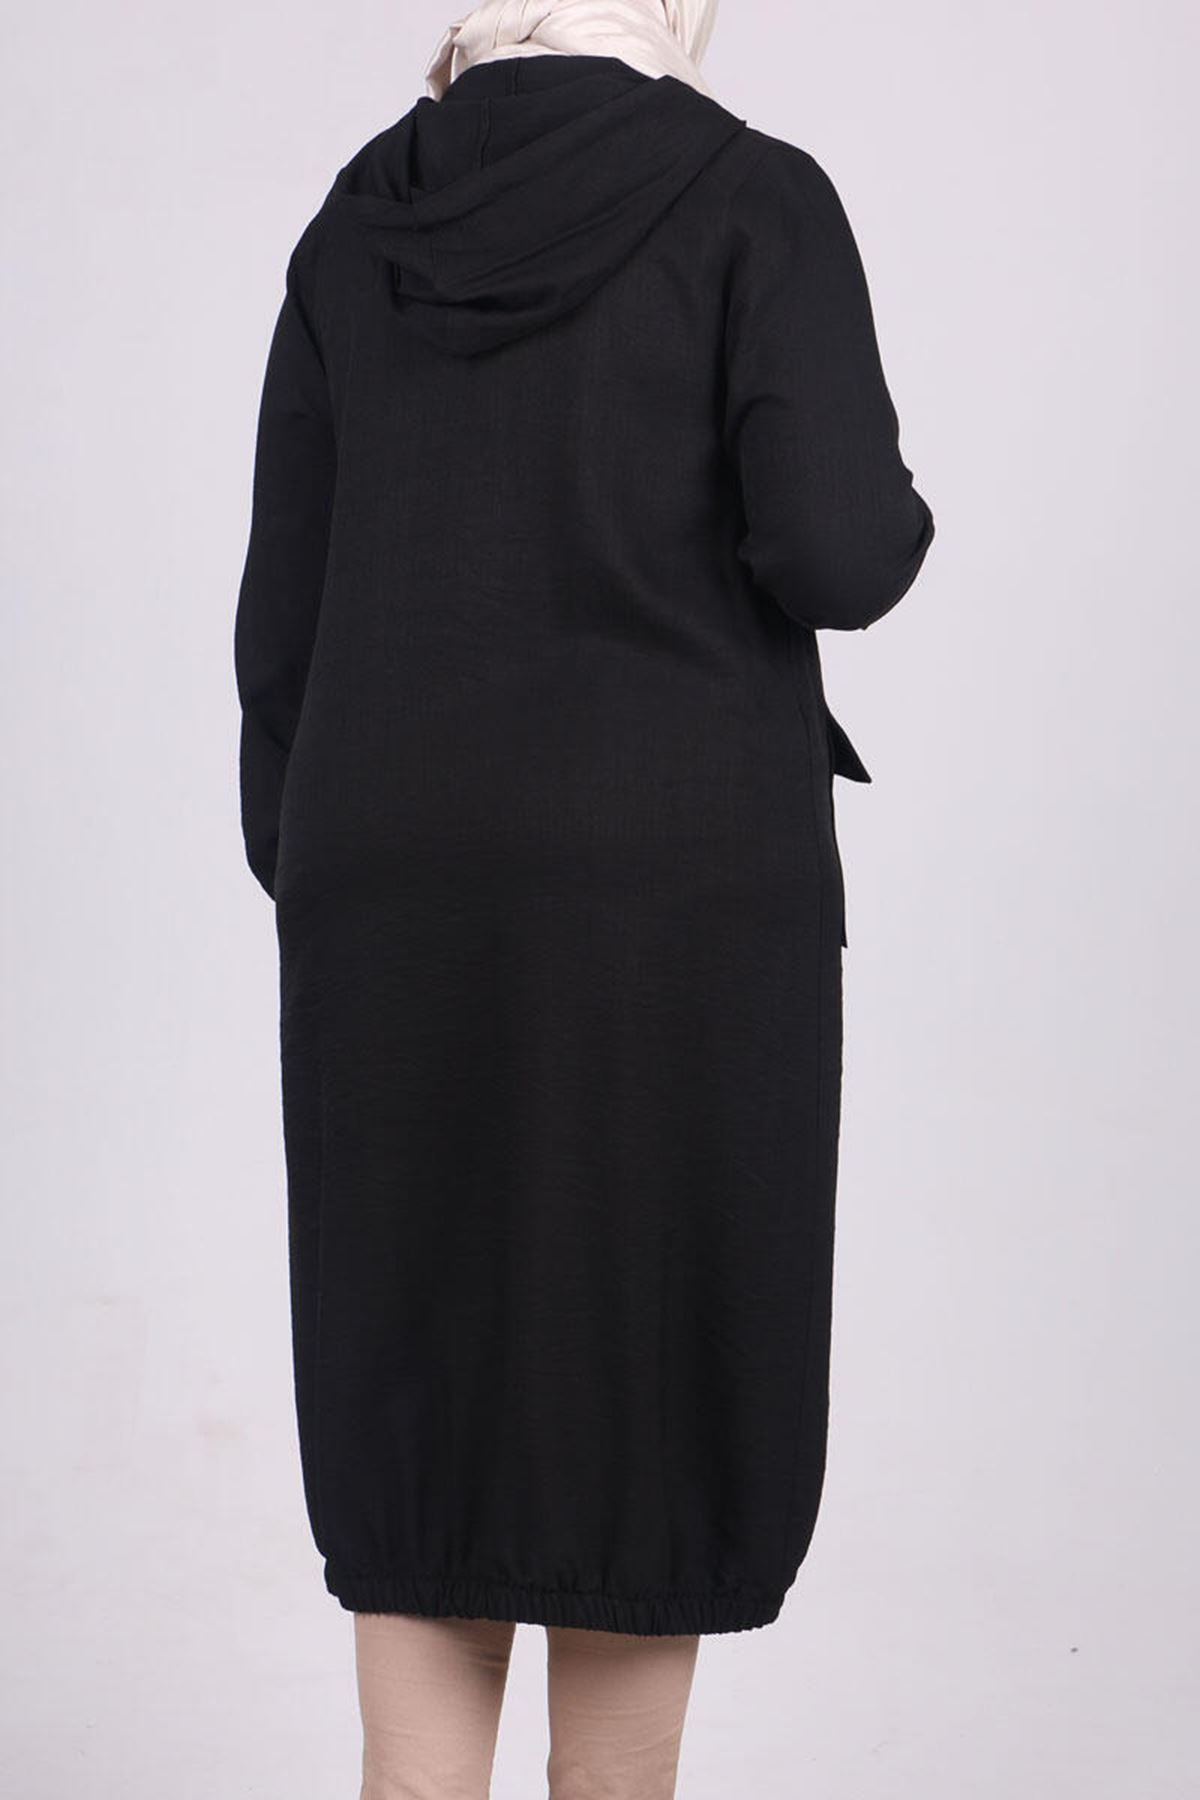 3125 Plus Size Coat with Pocket and Button- Black